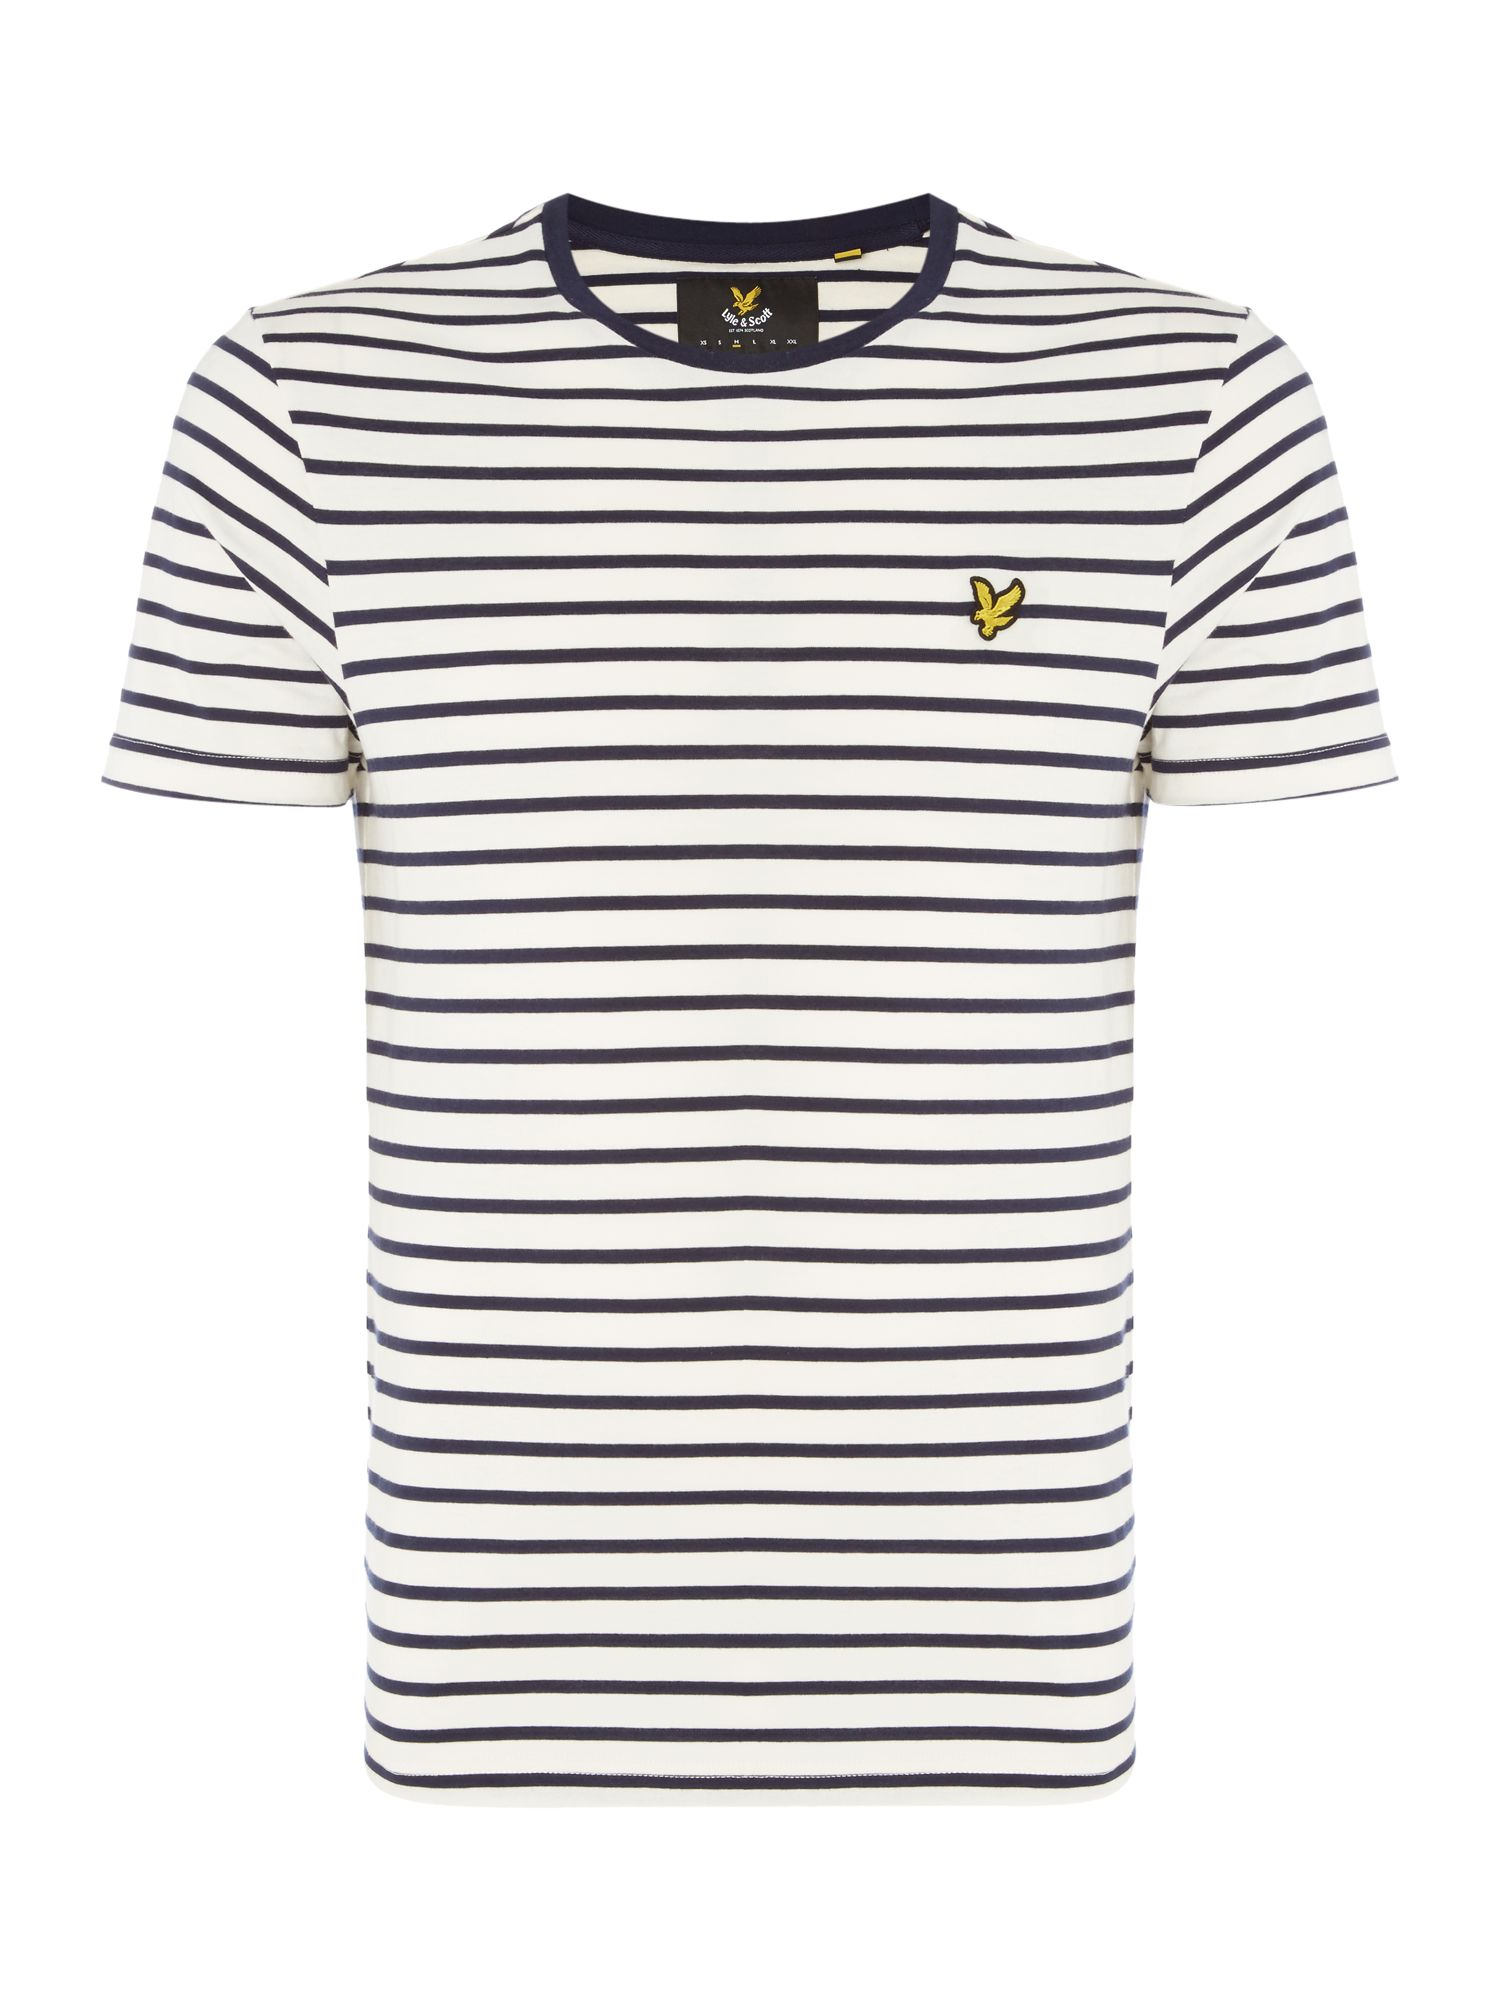 Men's Lyle and Scott Breton Stripe Crew Neck T-Shirt, White & Blue